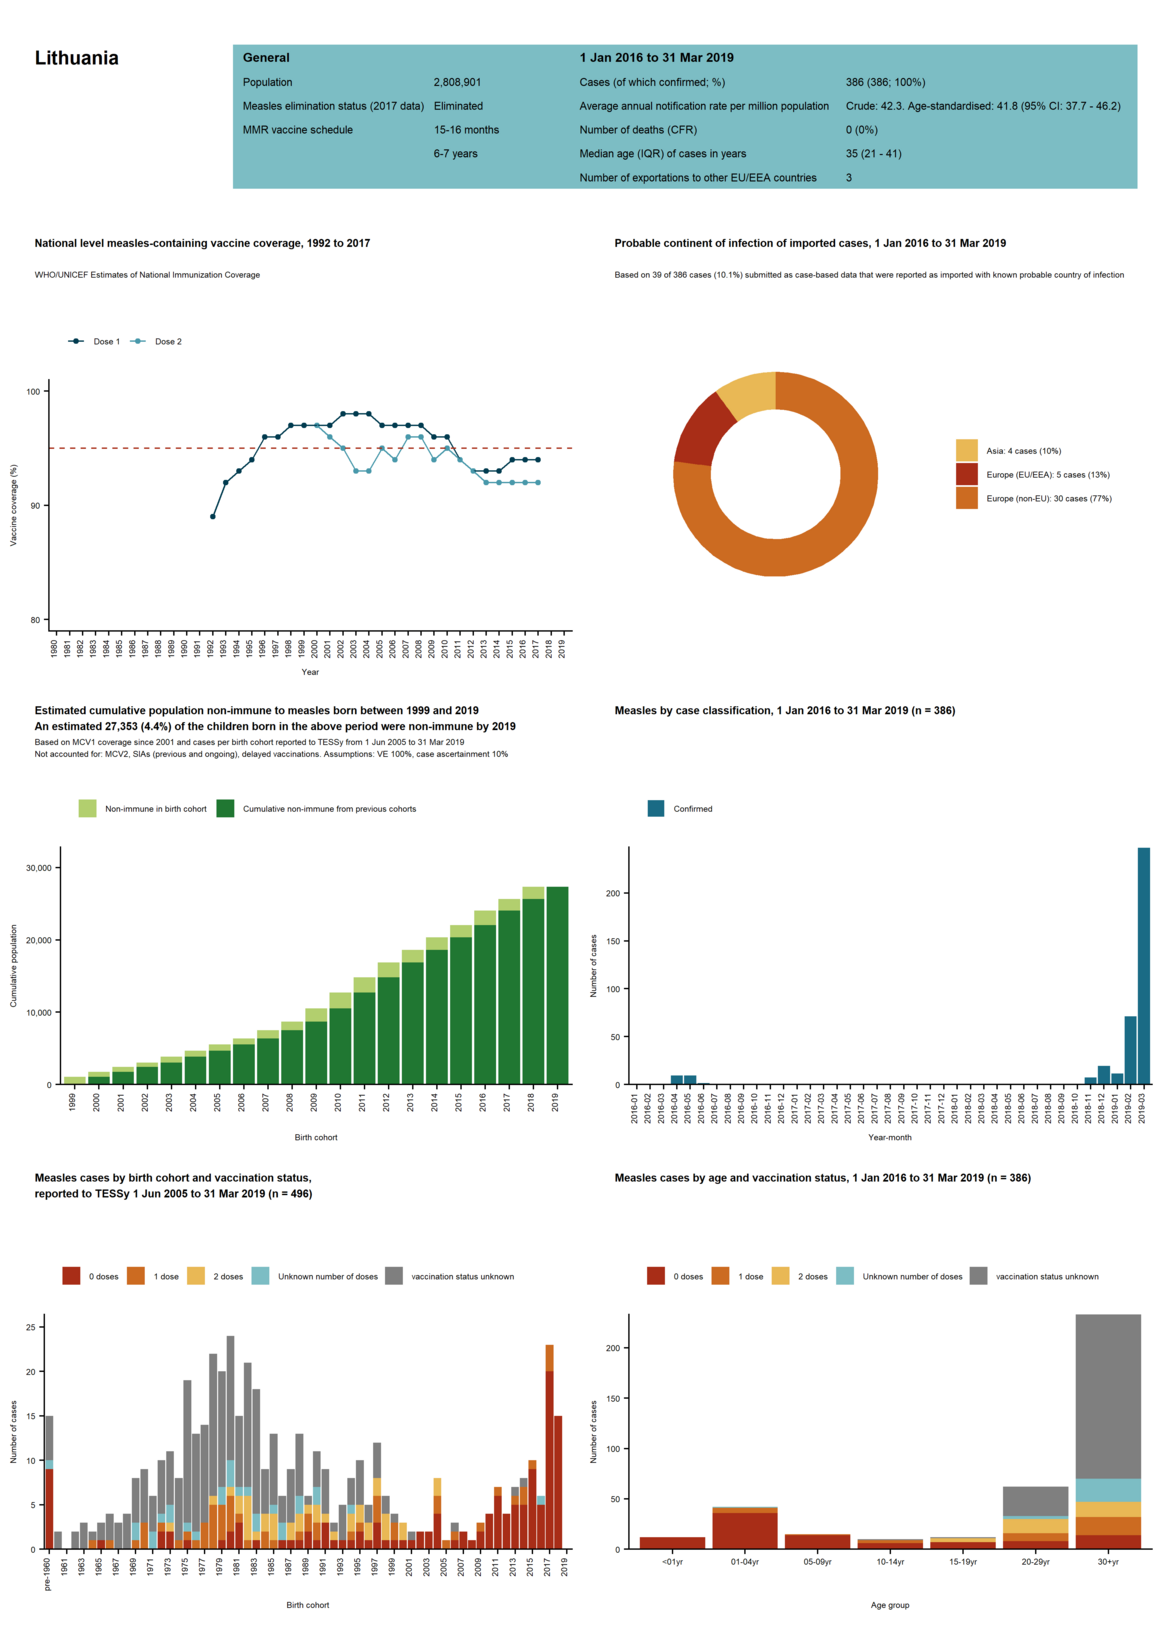 Country profile for Lithuania - risk assessment on measles, May 2019